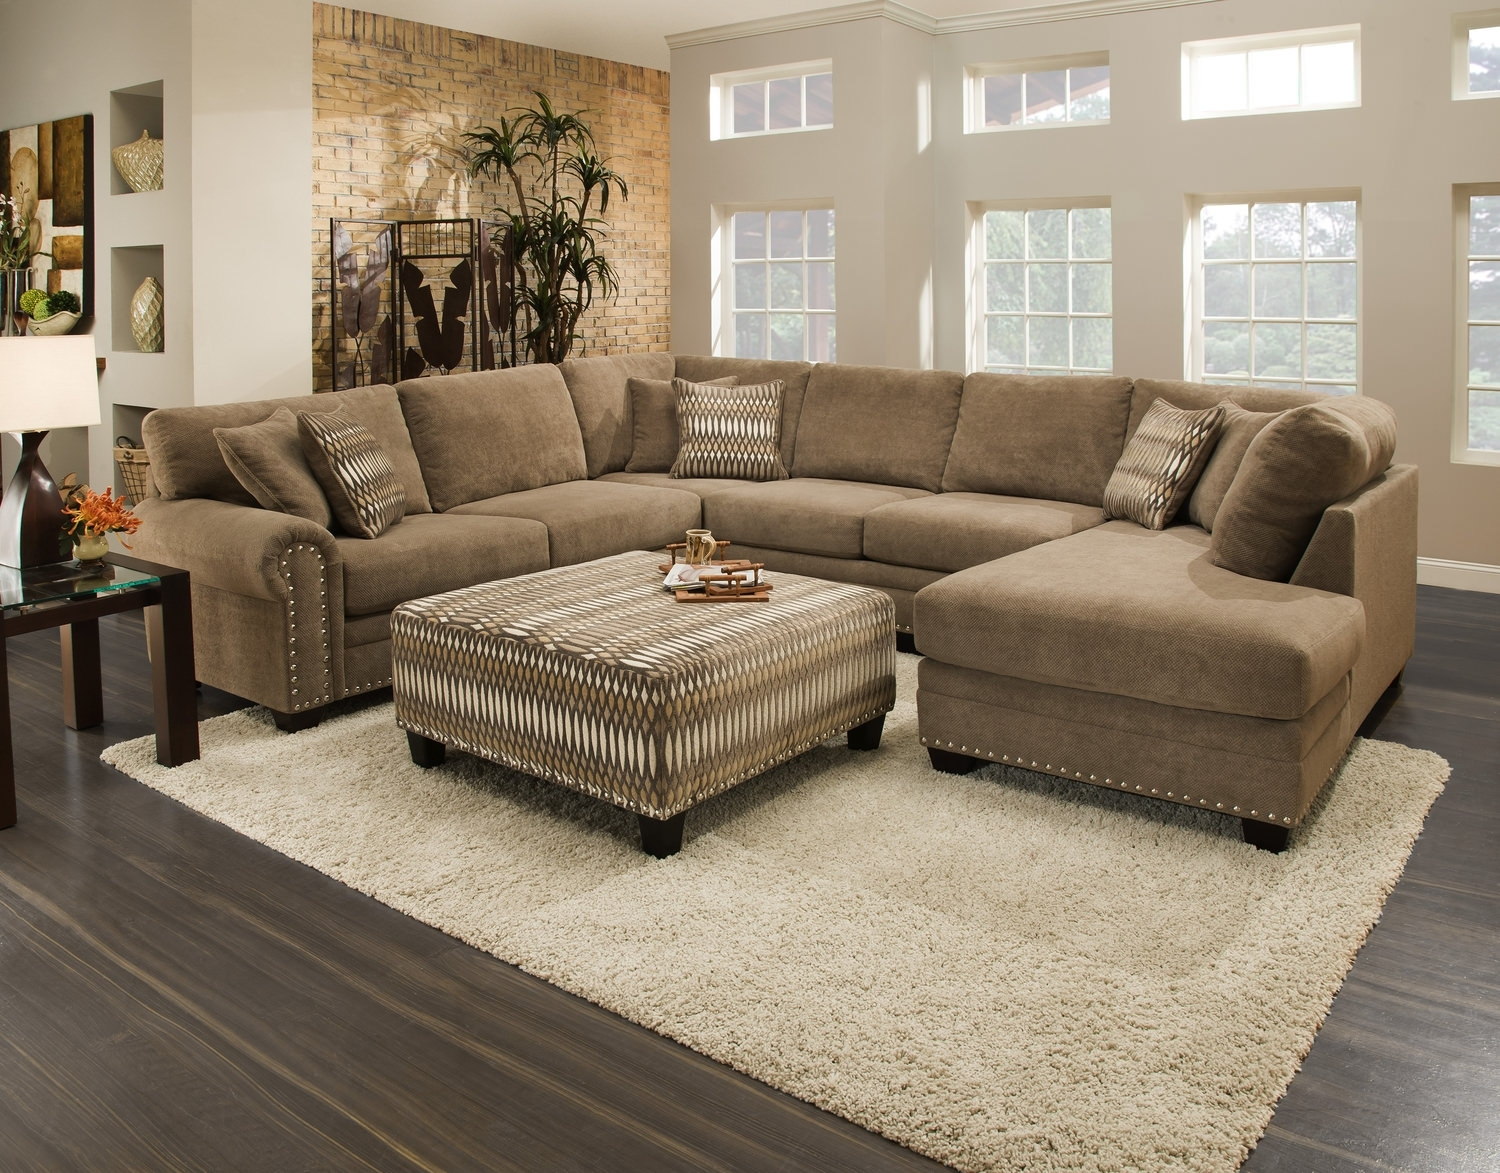 Sectional Sofas Mn – Home And Textiles Regarding Mn Sectional Sofas (Image 8 of 10)